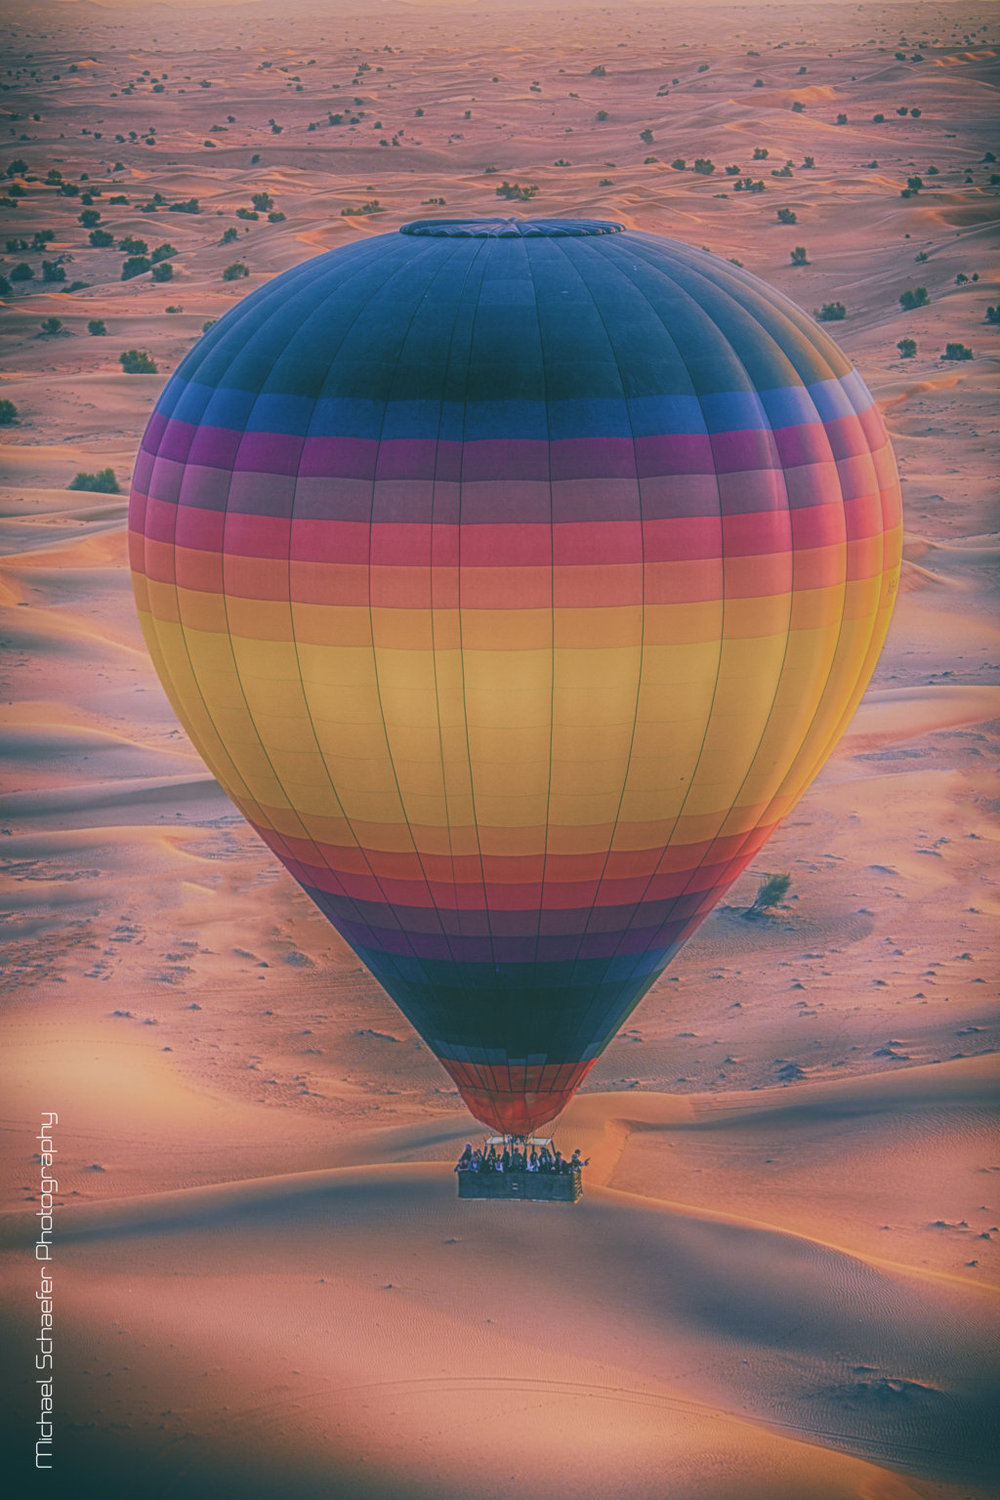 Hot-Air-Balloons-in-Dubai-FILEminimizer.jpg